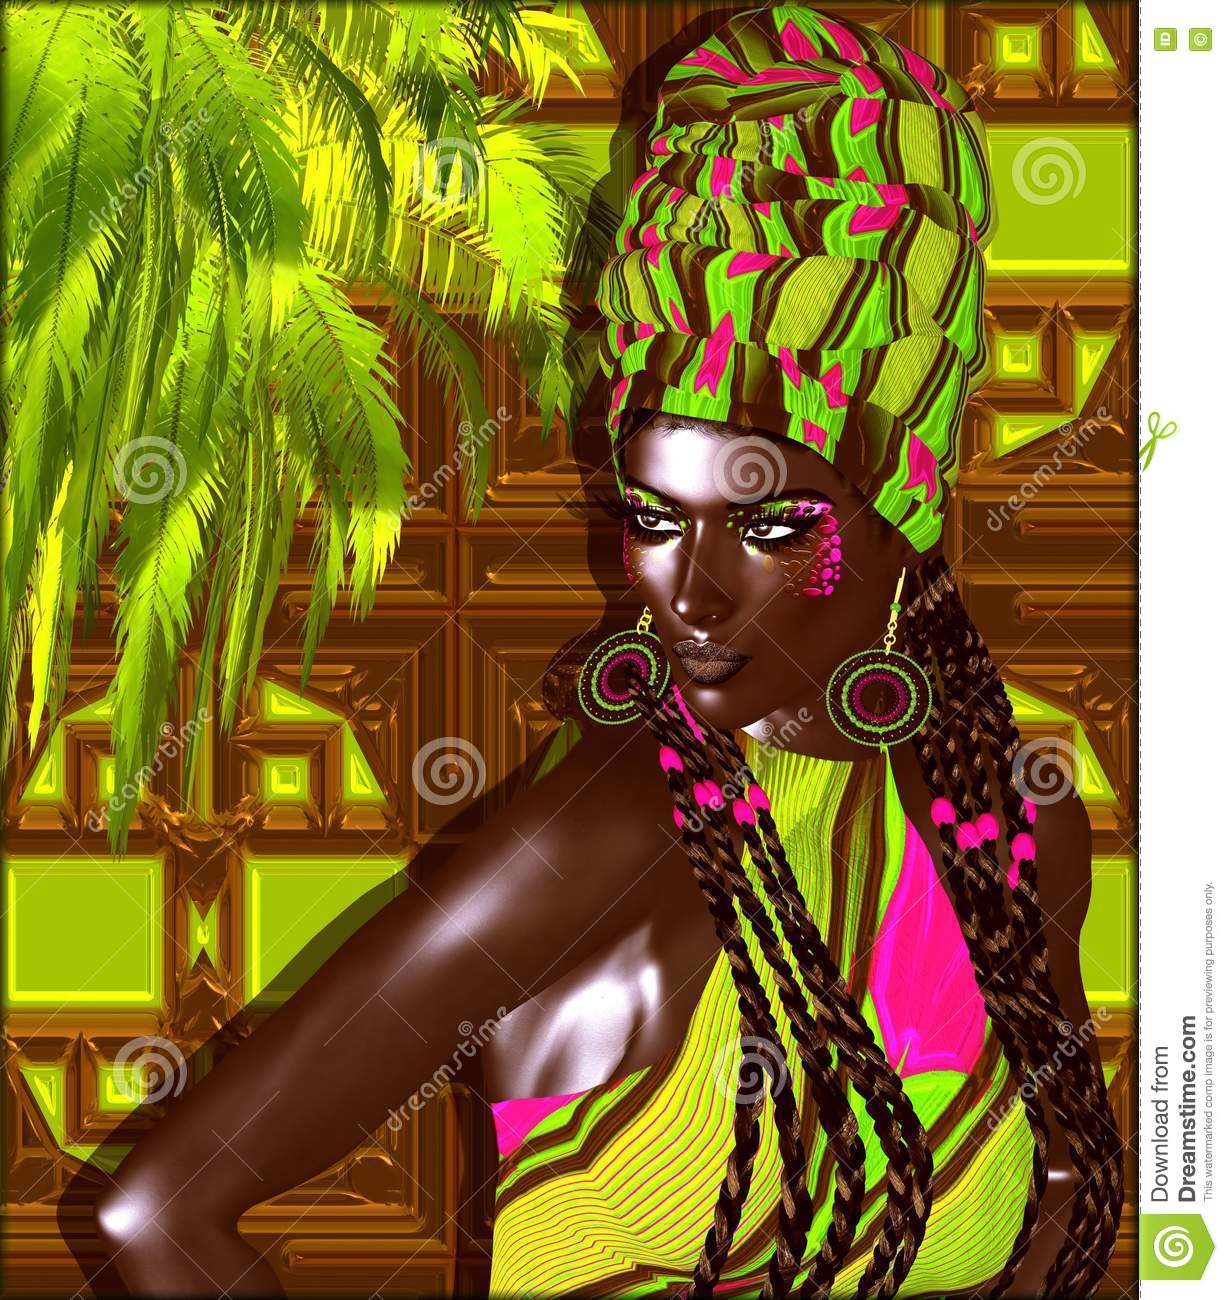 African American Fashion Beauty. A stunning colorful image of a beautiful woman with matching makeup, accessories and clothing